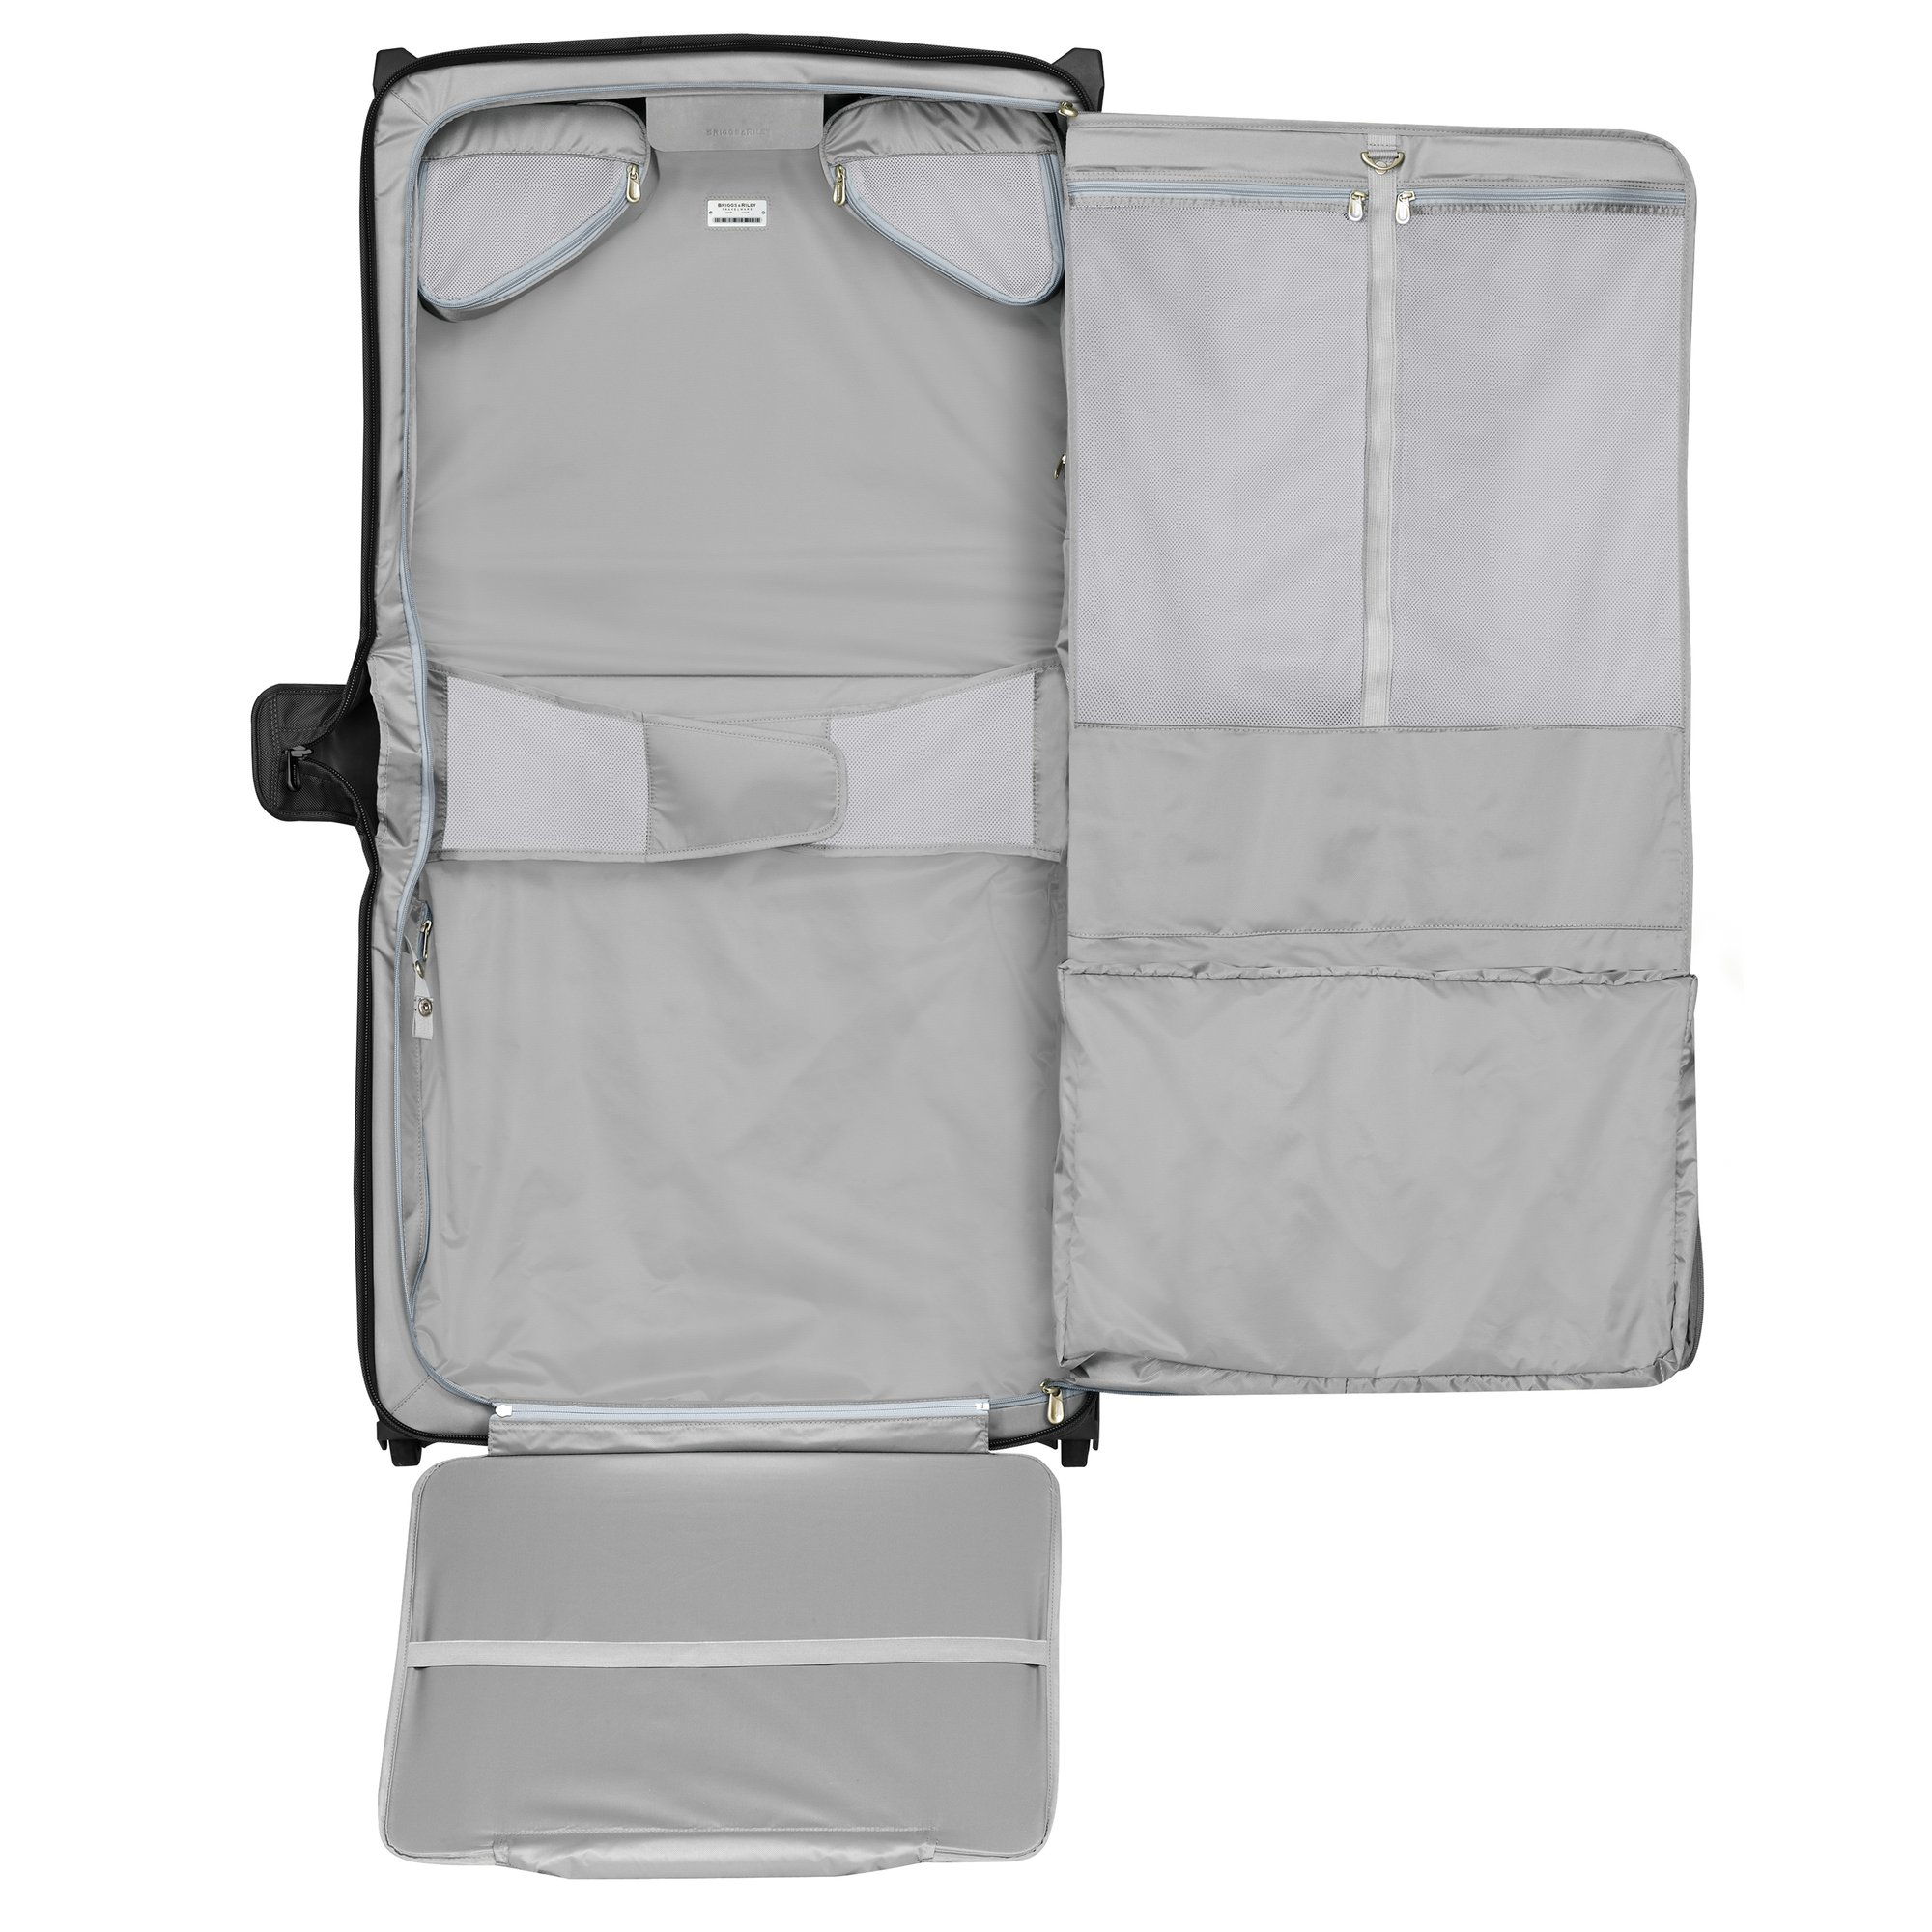 garment bag from briggs and riley